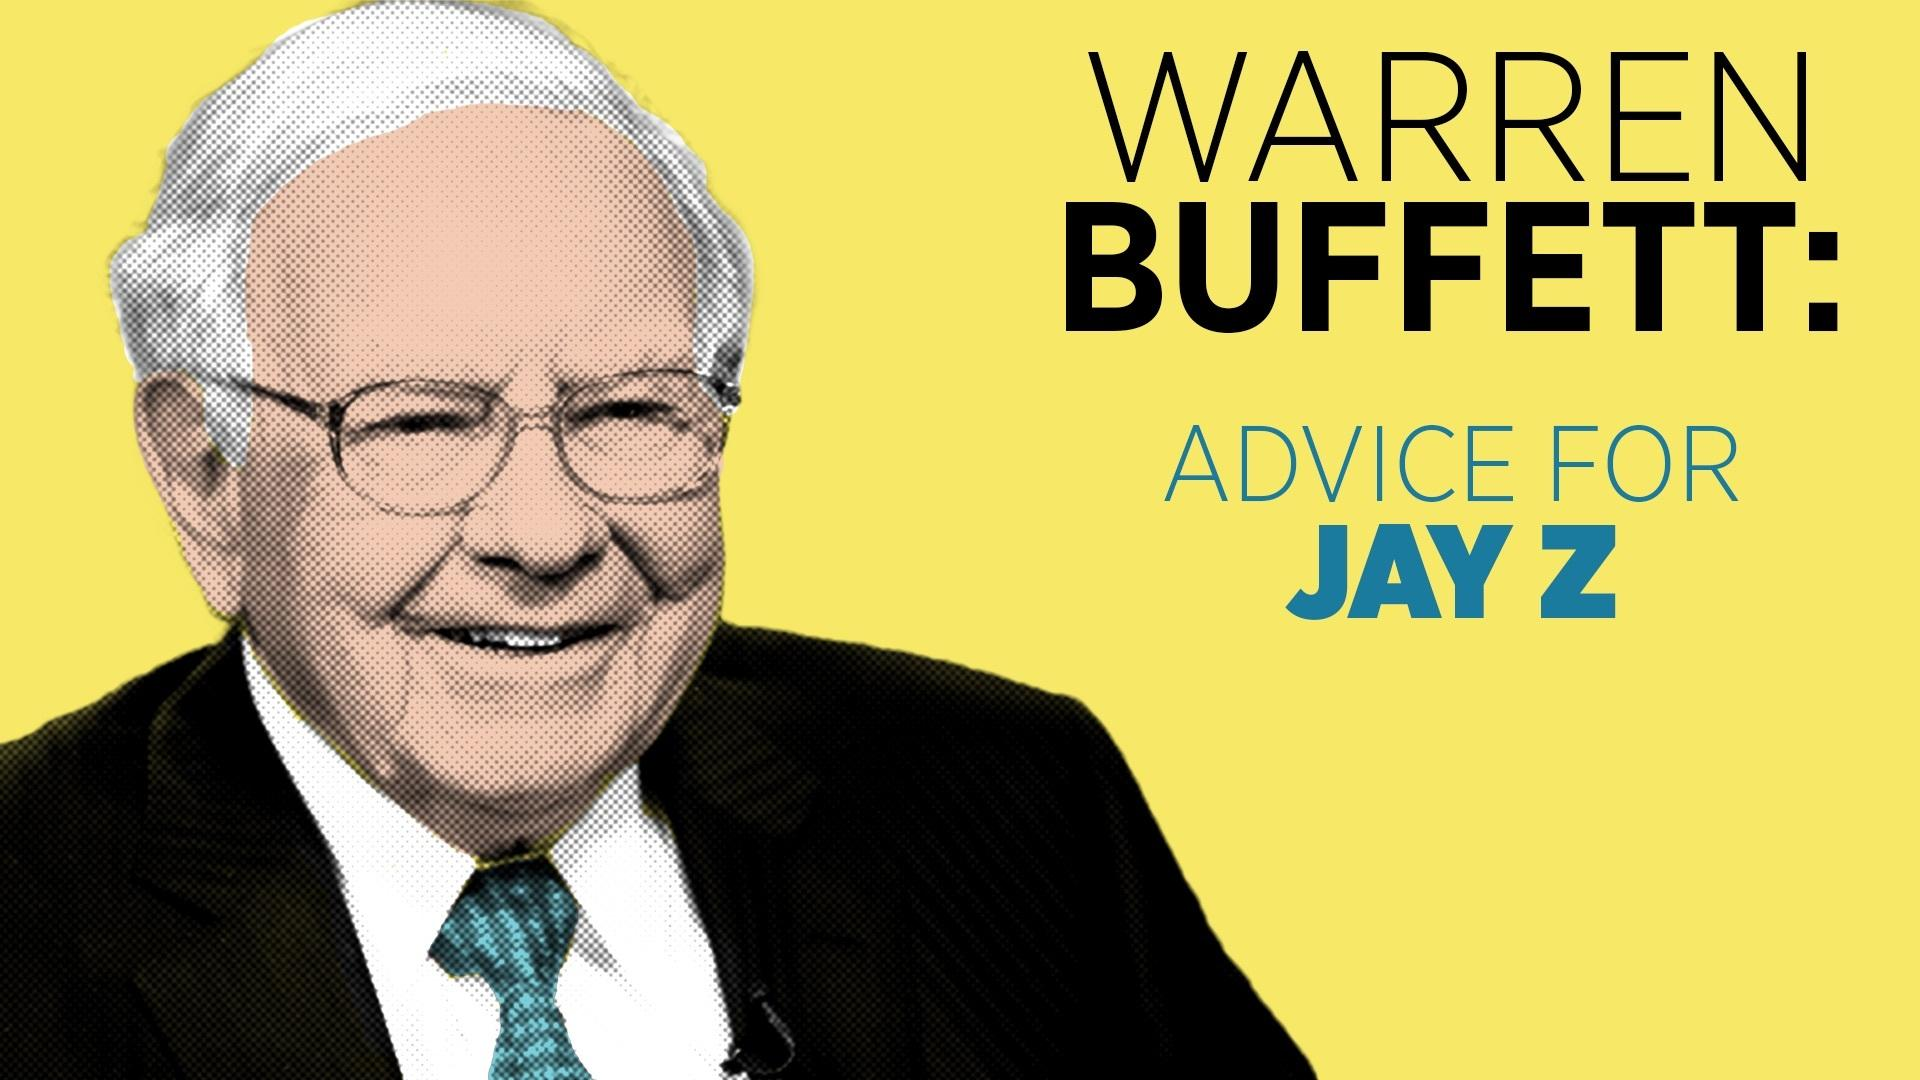 Warren Buffett's Advice To Jay Z